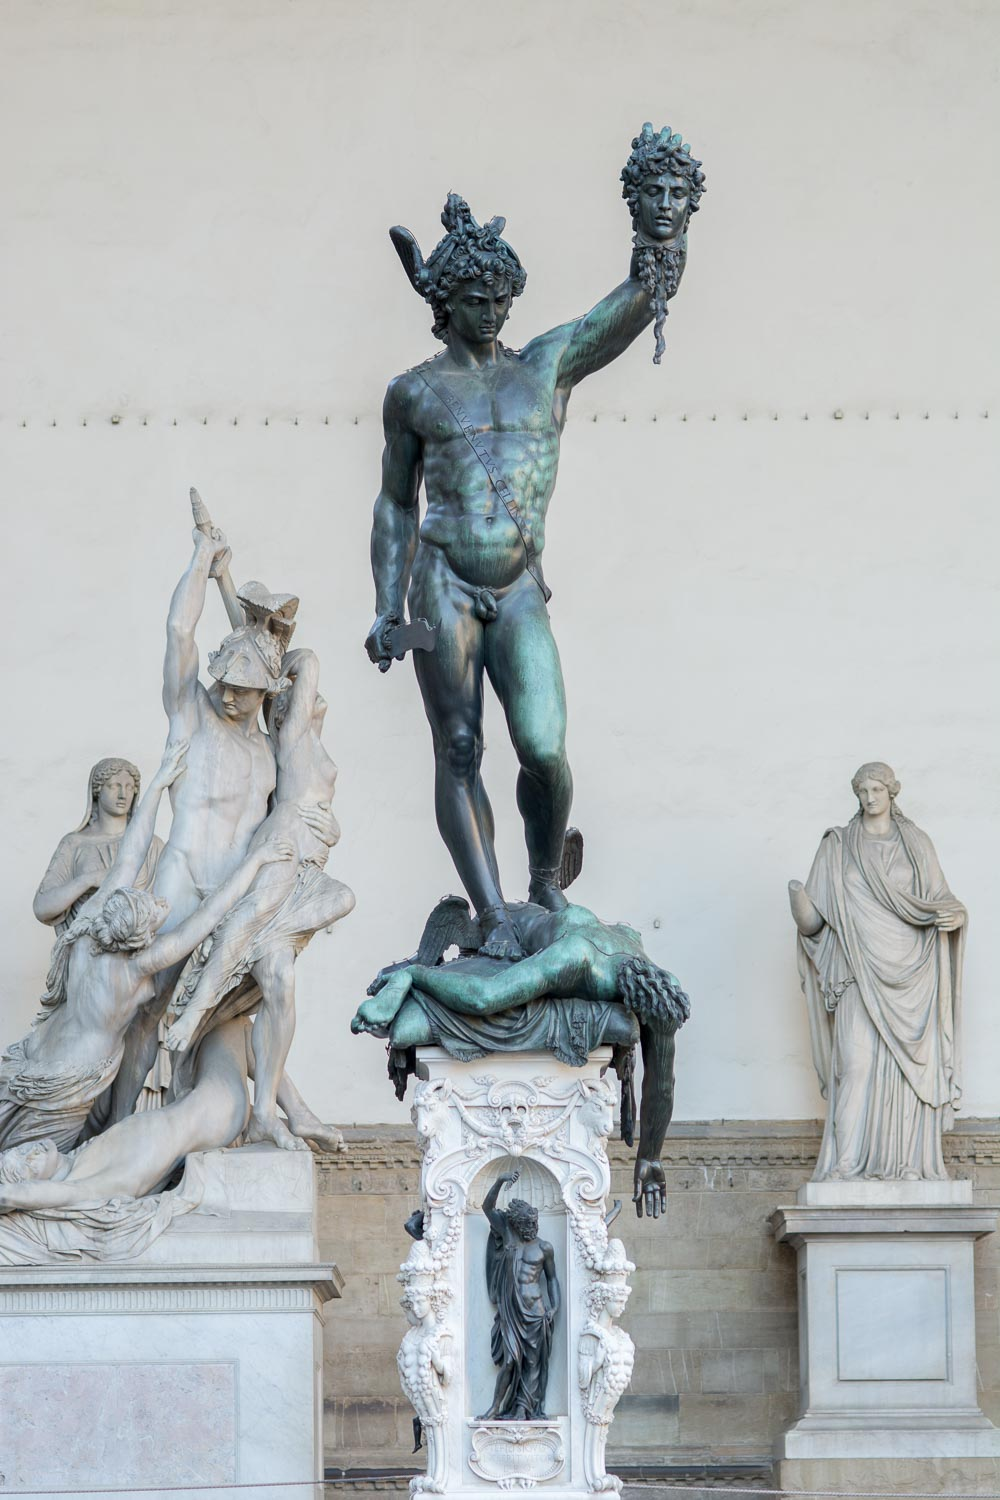 Perseus with the Head of Medusa by Benvenuto Cellini (1554) in Florence, Italy